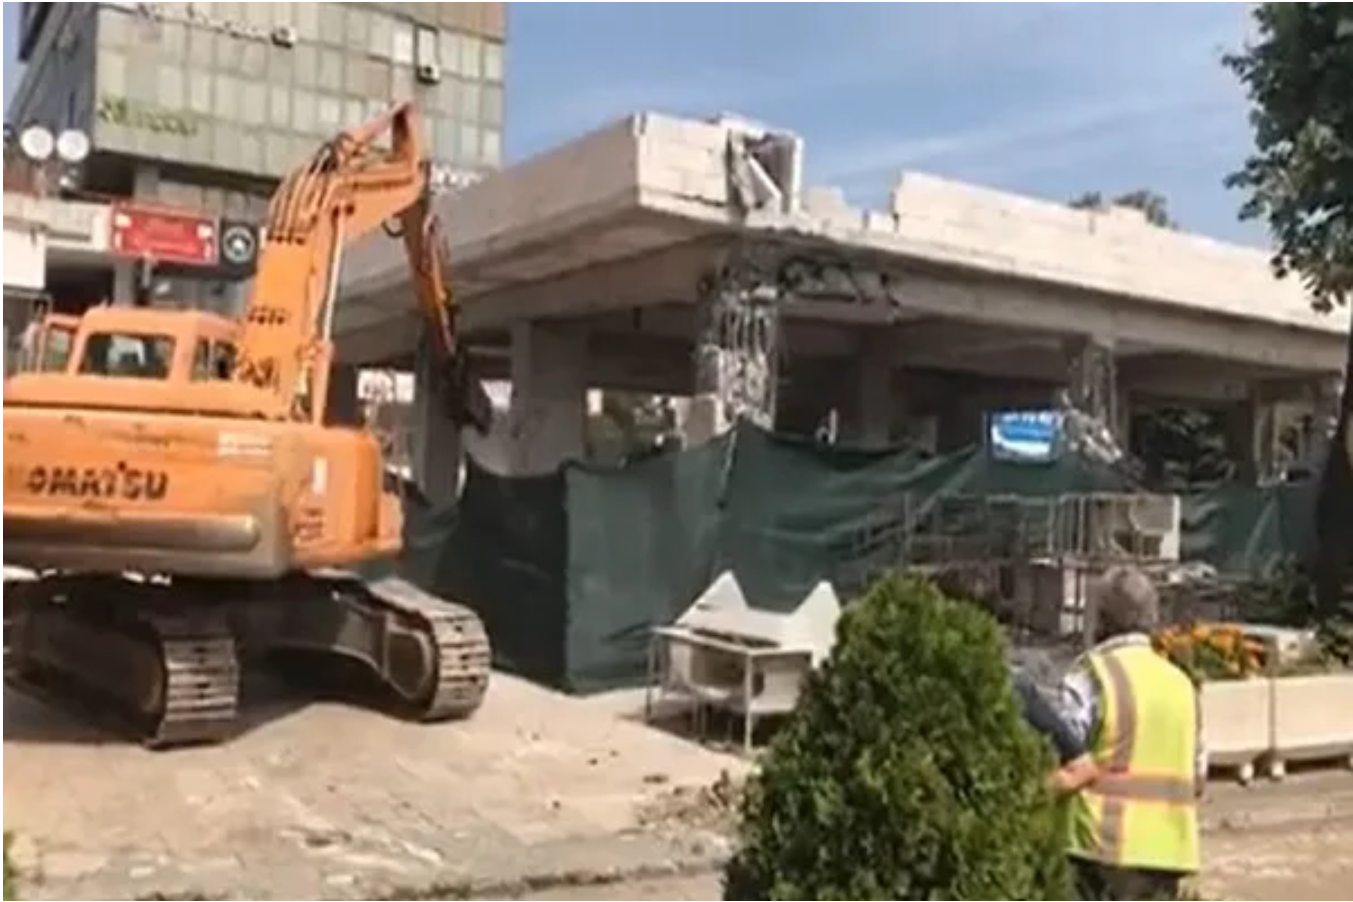 Illegal construction at Mavrovka Mall being demolished, owner also appears, Public Prosecutor Office files indictment, Ahmeti testifies to Kosovo War Prosecutors…